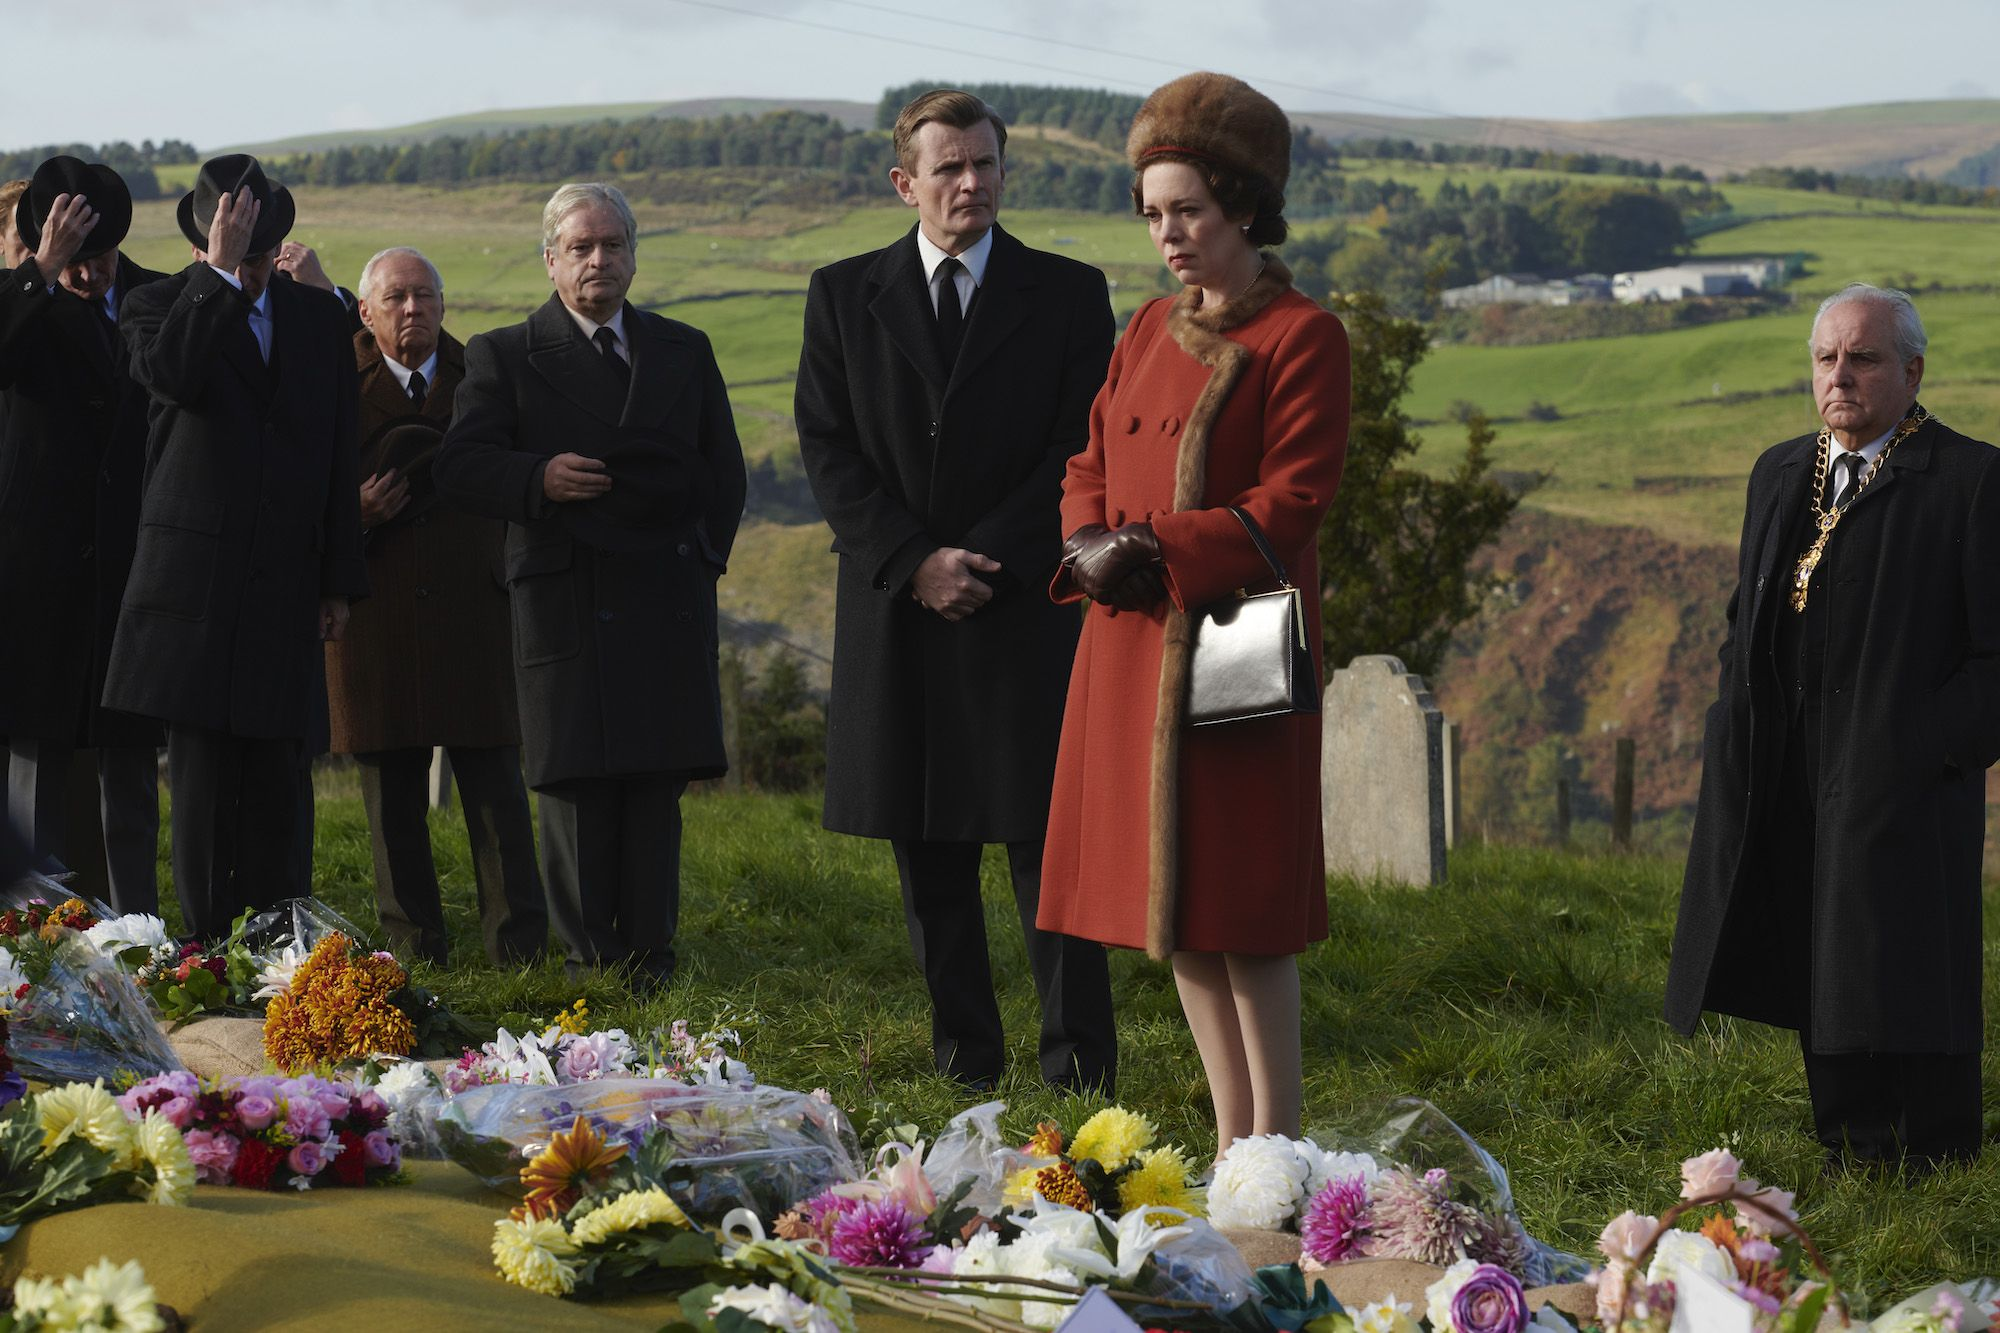 """The True Story of Queen Elizabeth's """"Fake Crying"""" in Aberfan on 'The Crown'"""